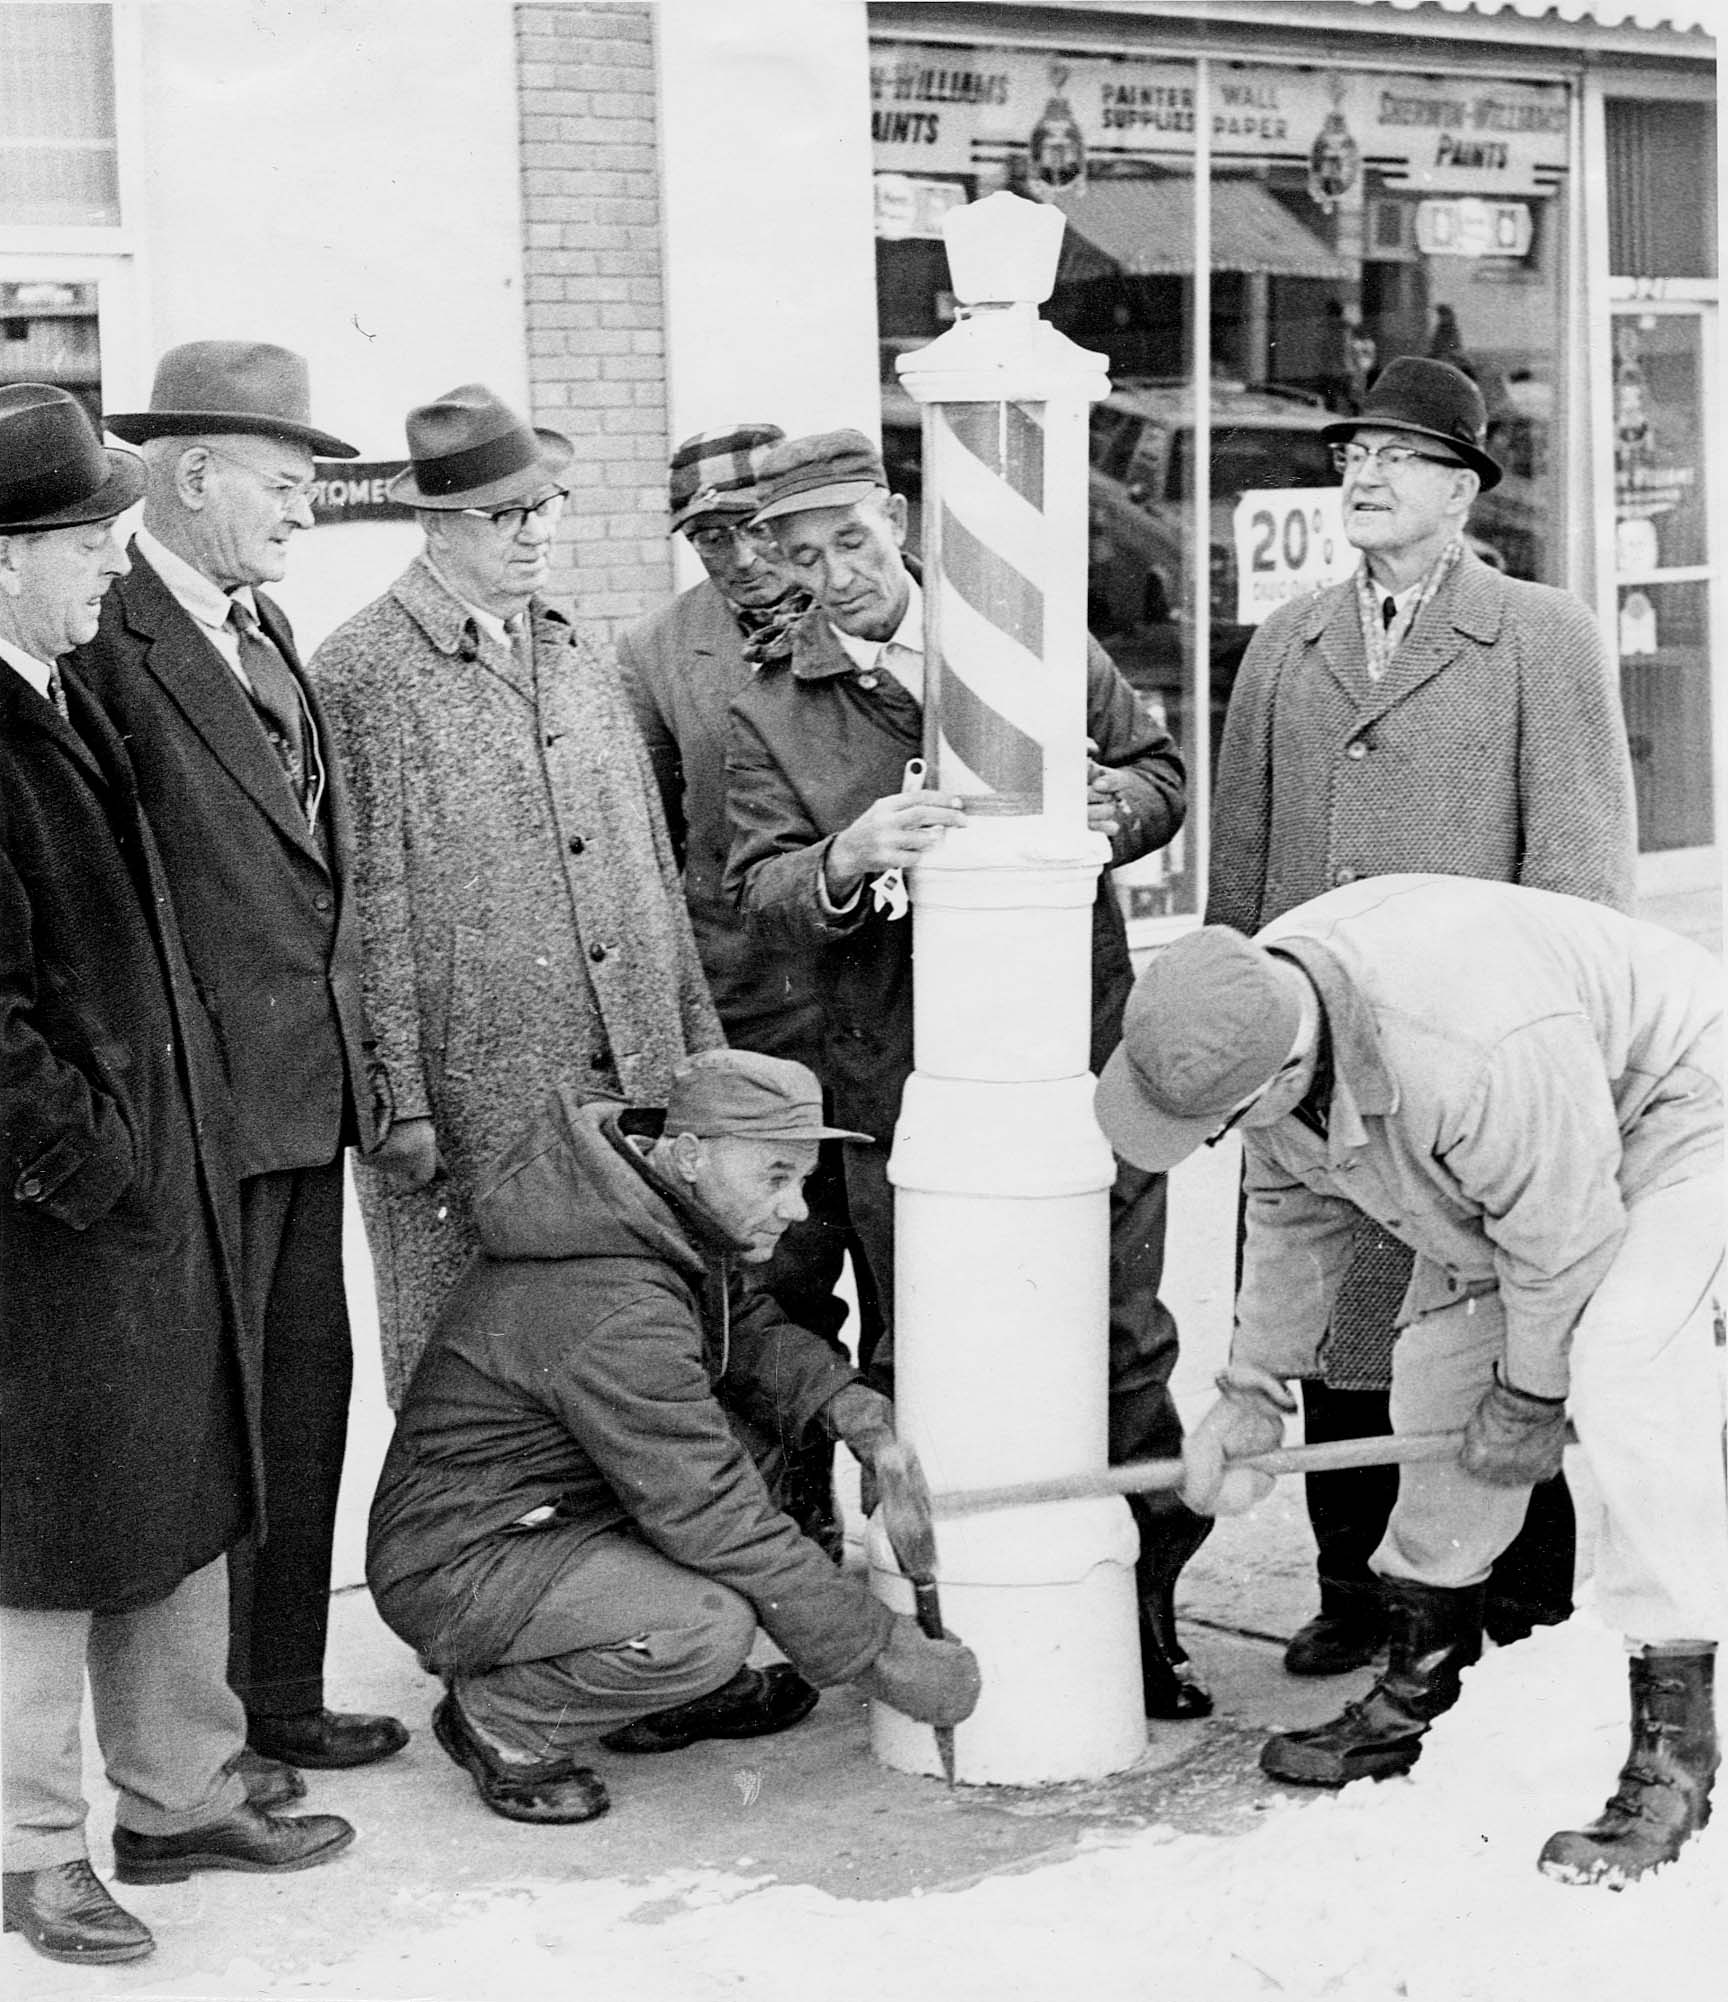 """Caption from the Lethbridge Herald November 29, 1965:  """"SAVING BARBER POLE FOR POSTERITY ~ When the late James and Harold Westbrook put this barber pole in place on 6th St. S. some 40 years ago they probably never dreamed it would end up in the Lethbridge and District Museum. But sidewalk barber poles are relics of the past and this one from the Westbrook Barber Shop is believed to be one of the last in the nation. Left to right are R.E. (Bob) Faulds, present owner of the shop; Andrew Staysko and Chris Gibson, museum officials; city employees Nick Poneck (immediately behind the pole); John Lanning (kneeling with chisel) and Charles Kunz (with hammer); and George McKillop, also of the museum.""""   Photo courtesy the Galt Museum & Archives: 19730307000"""